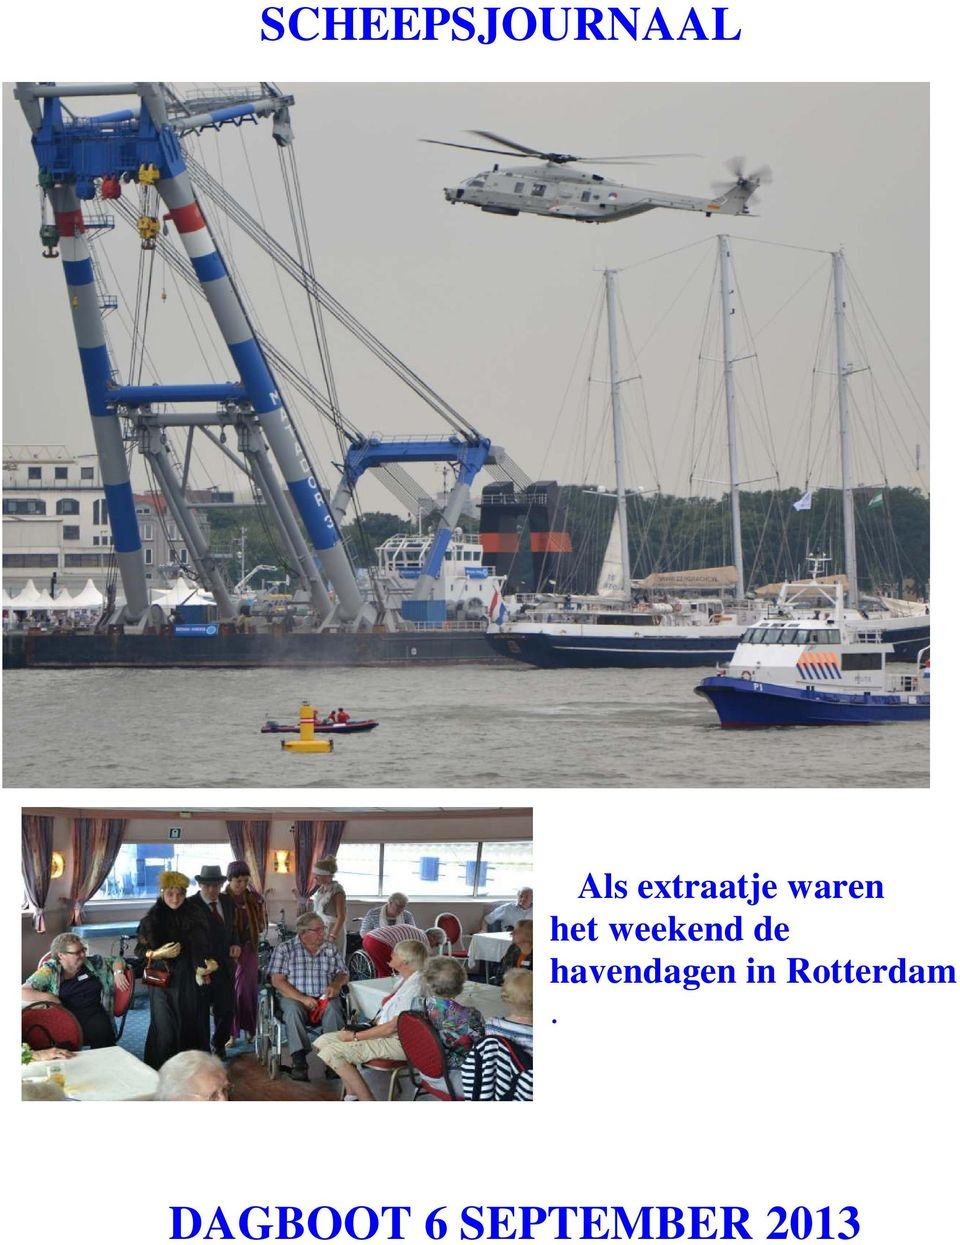 weekend de havendagen in